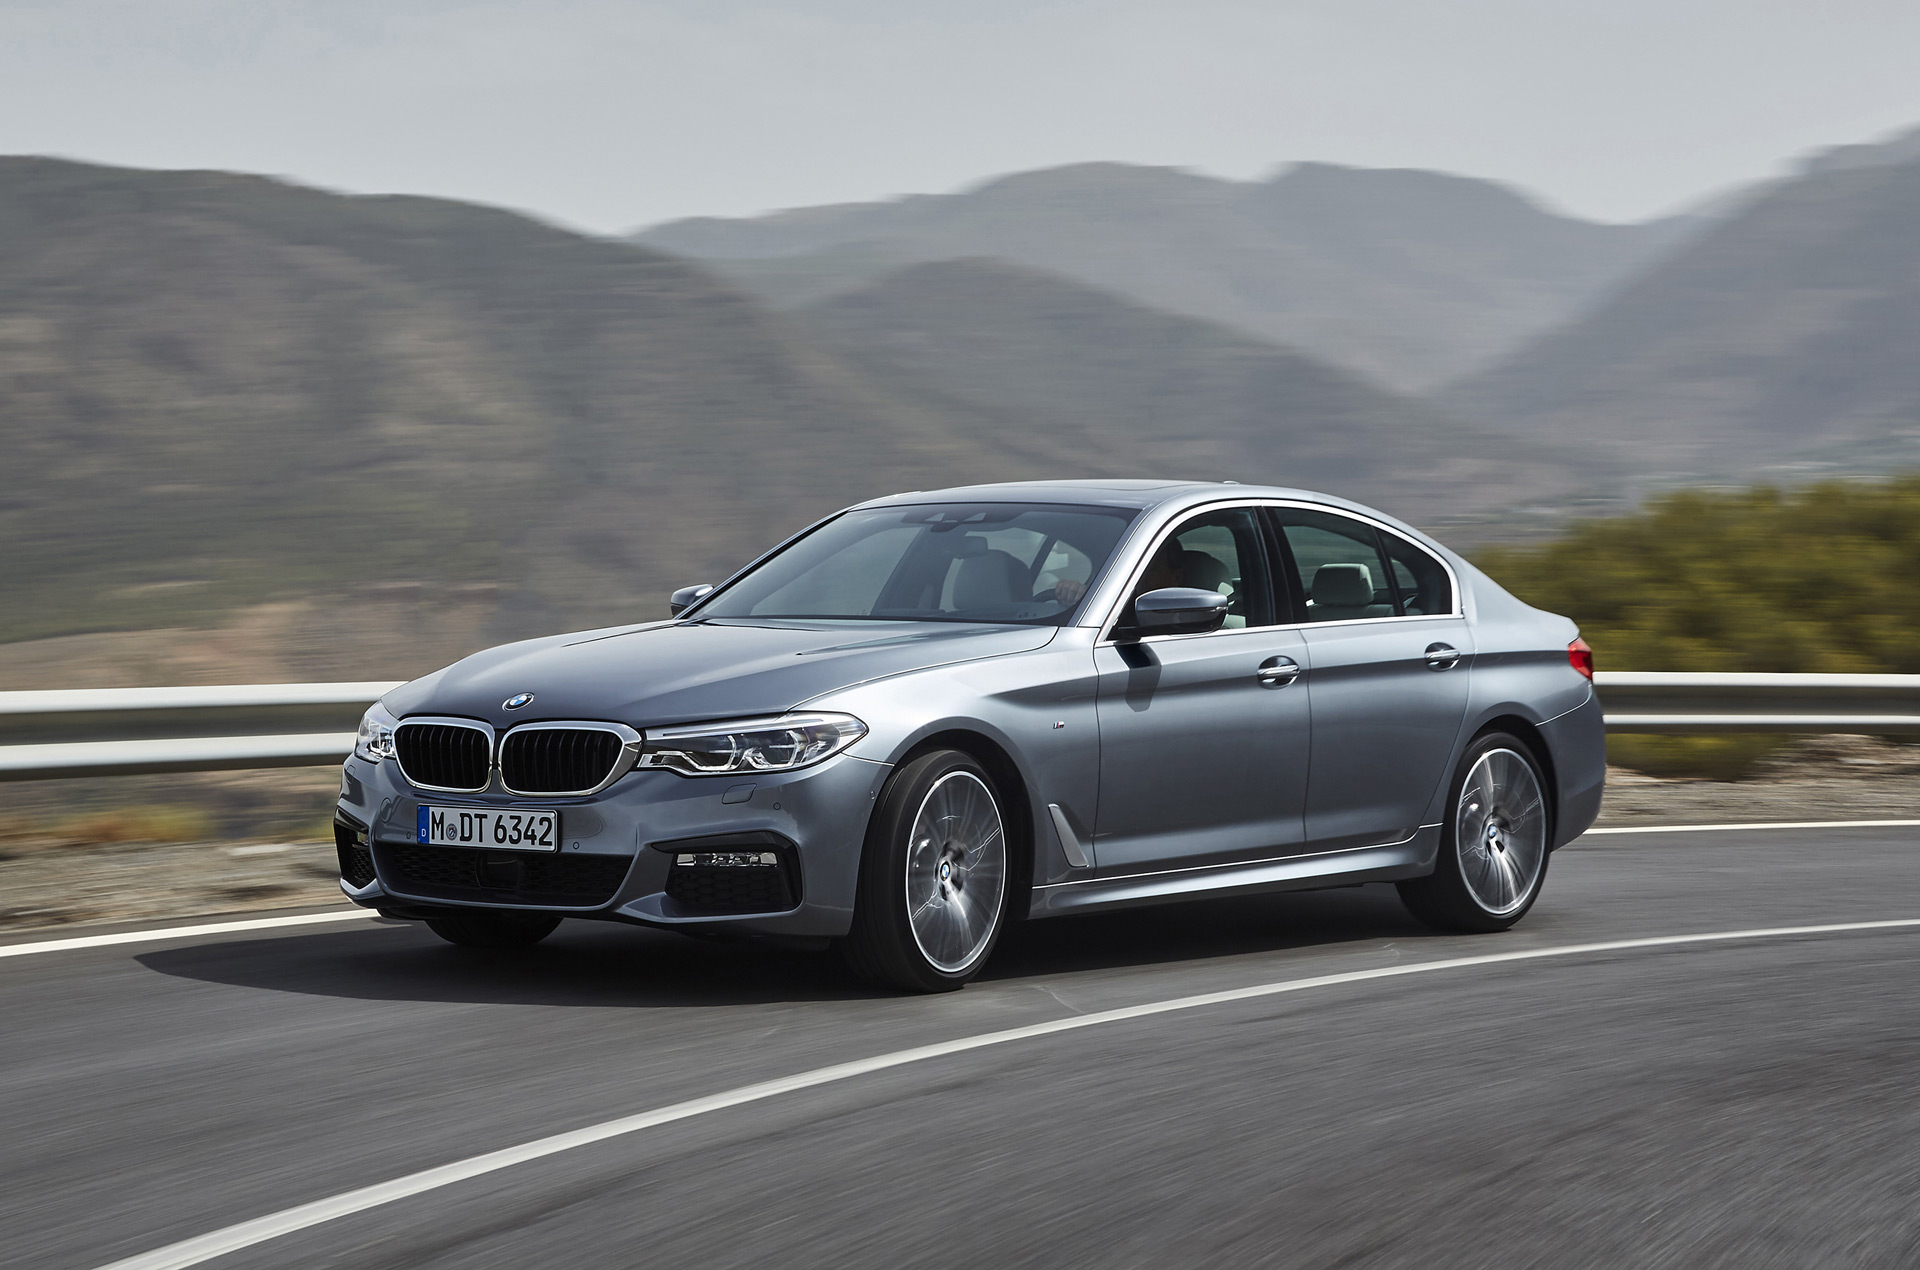 2017 BMW 5-Series Review, Ratings, Specs, Prices, and Photos - The Car Connection